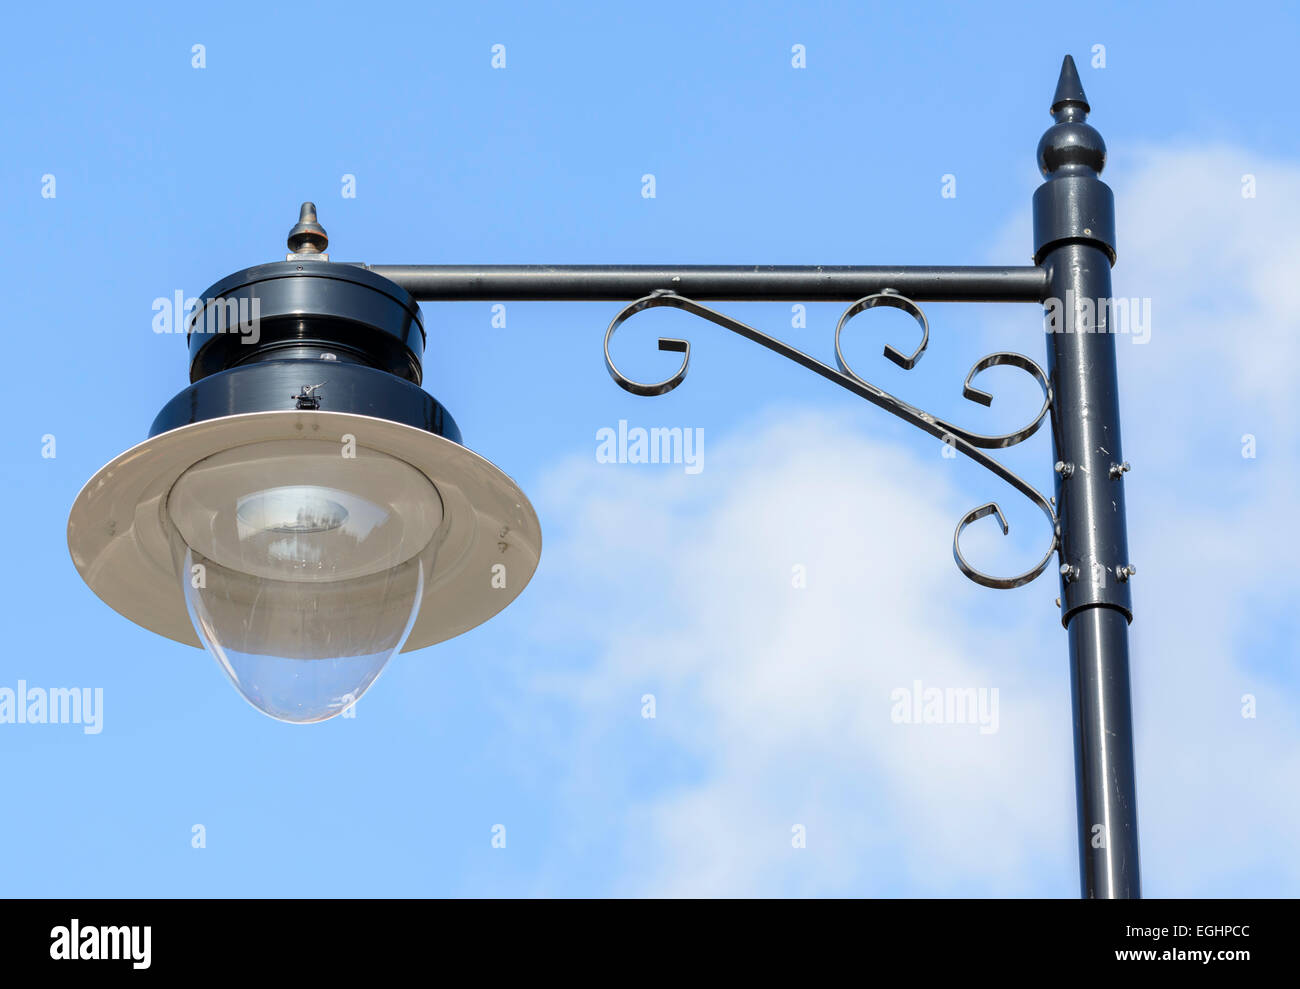 New street lamp in an old style against blue sky. - Stock Image